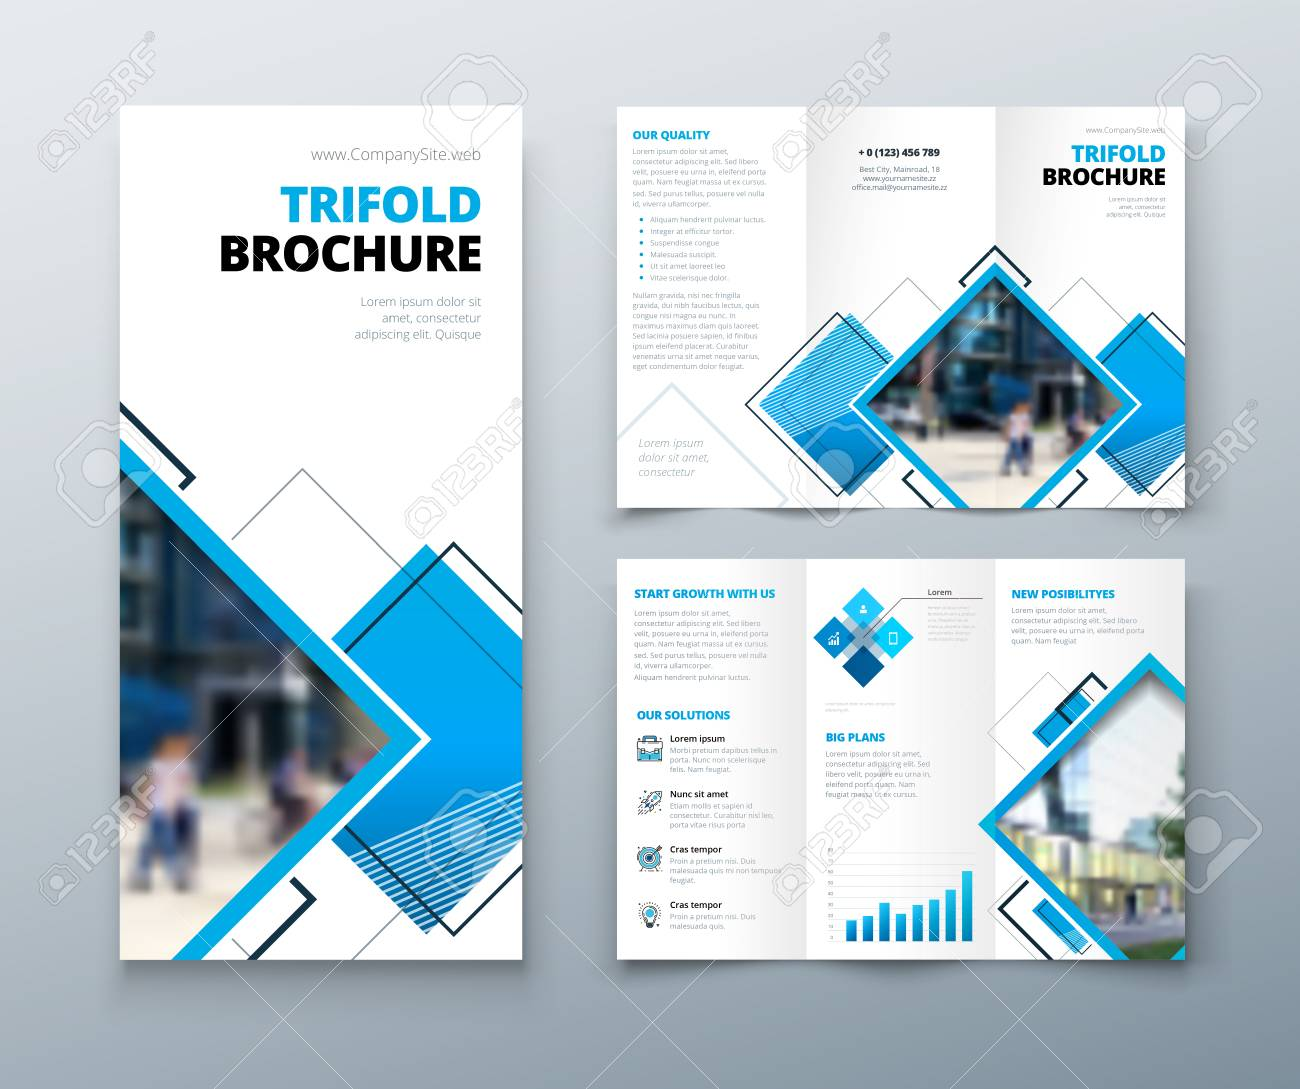 tri fold brochure design corporate business template for tri fold flyer with rhombus square shapes